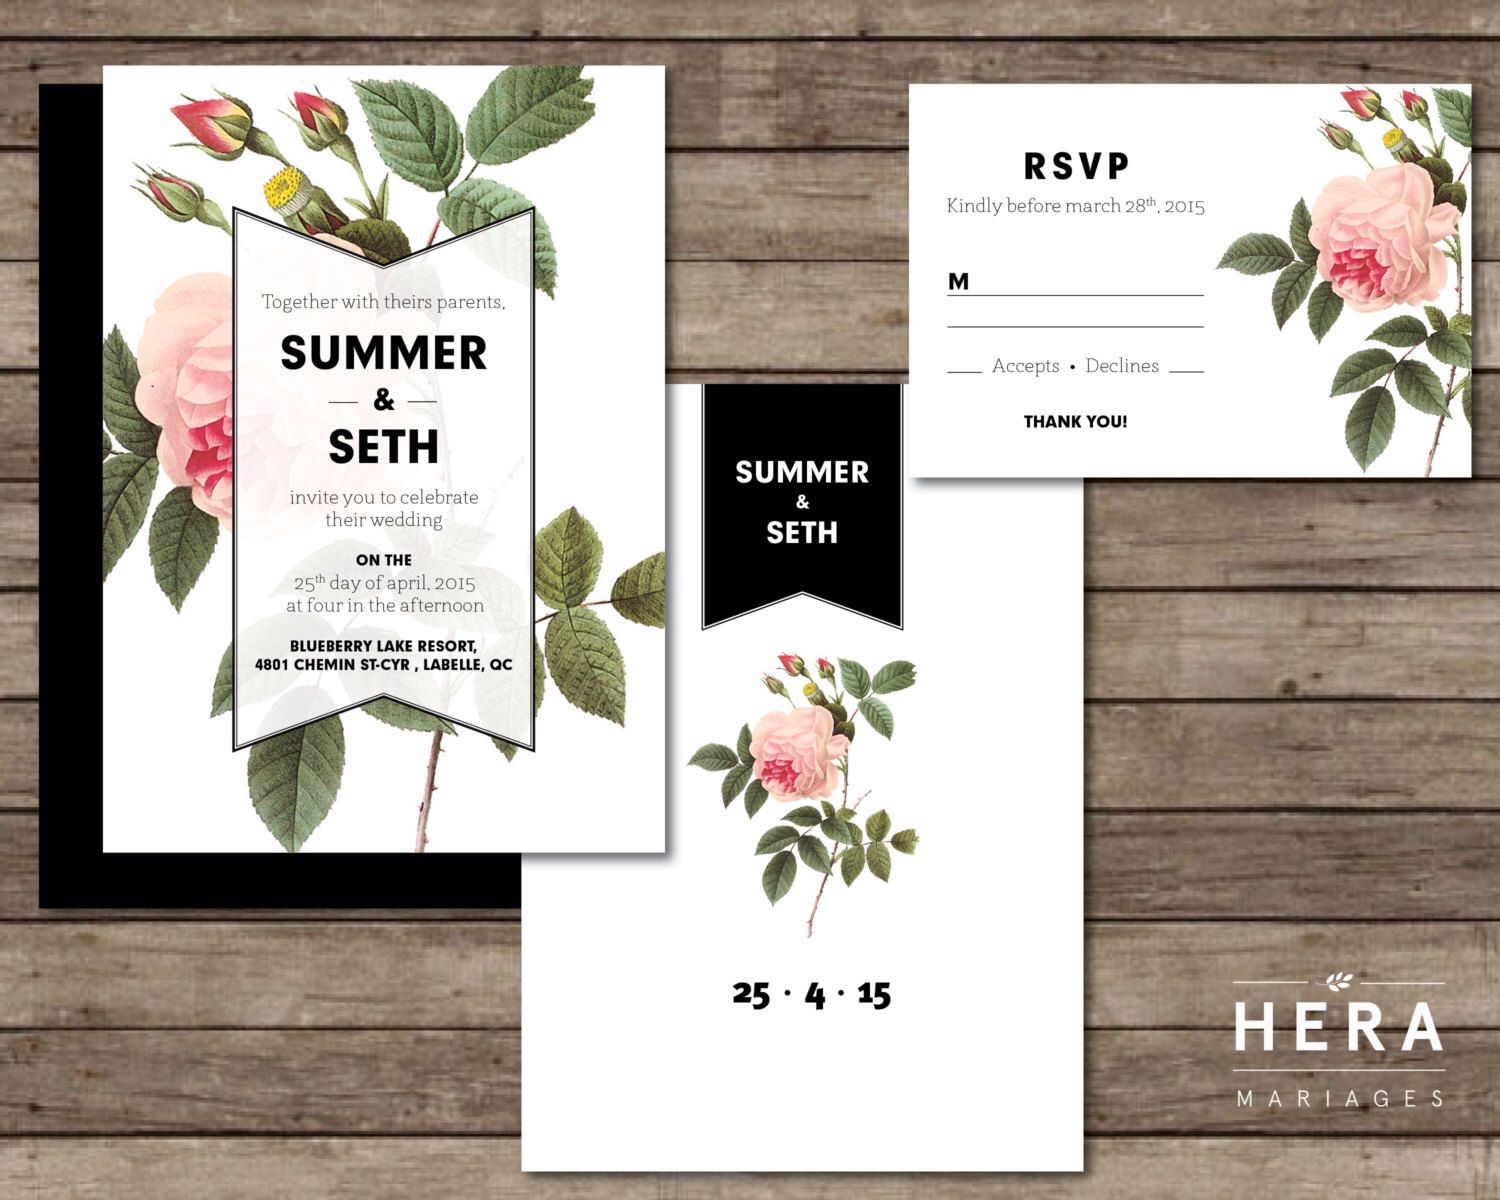 When Do You Order Wedding Invitations: Pin By Pearl Almberg On GRAPHIC